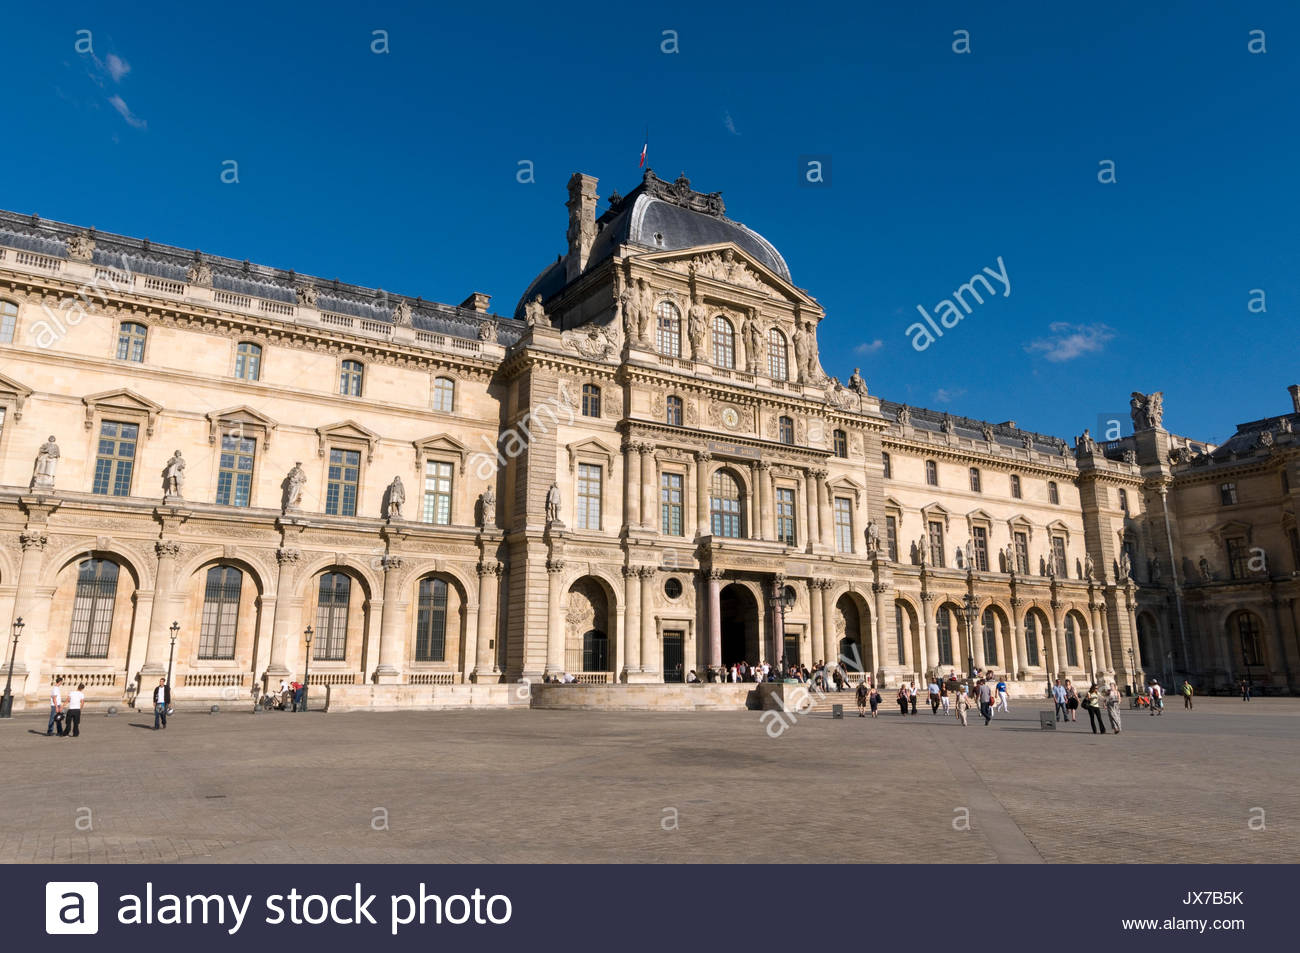 The main court of The Louvre museum. - Stock Image